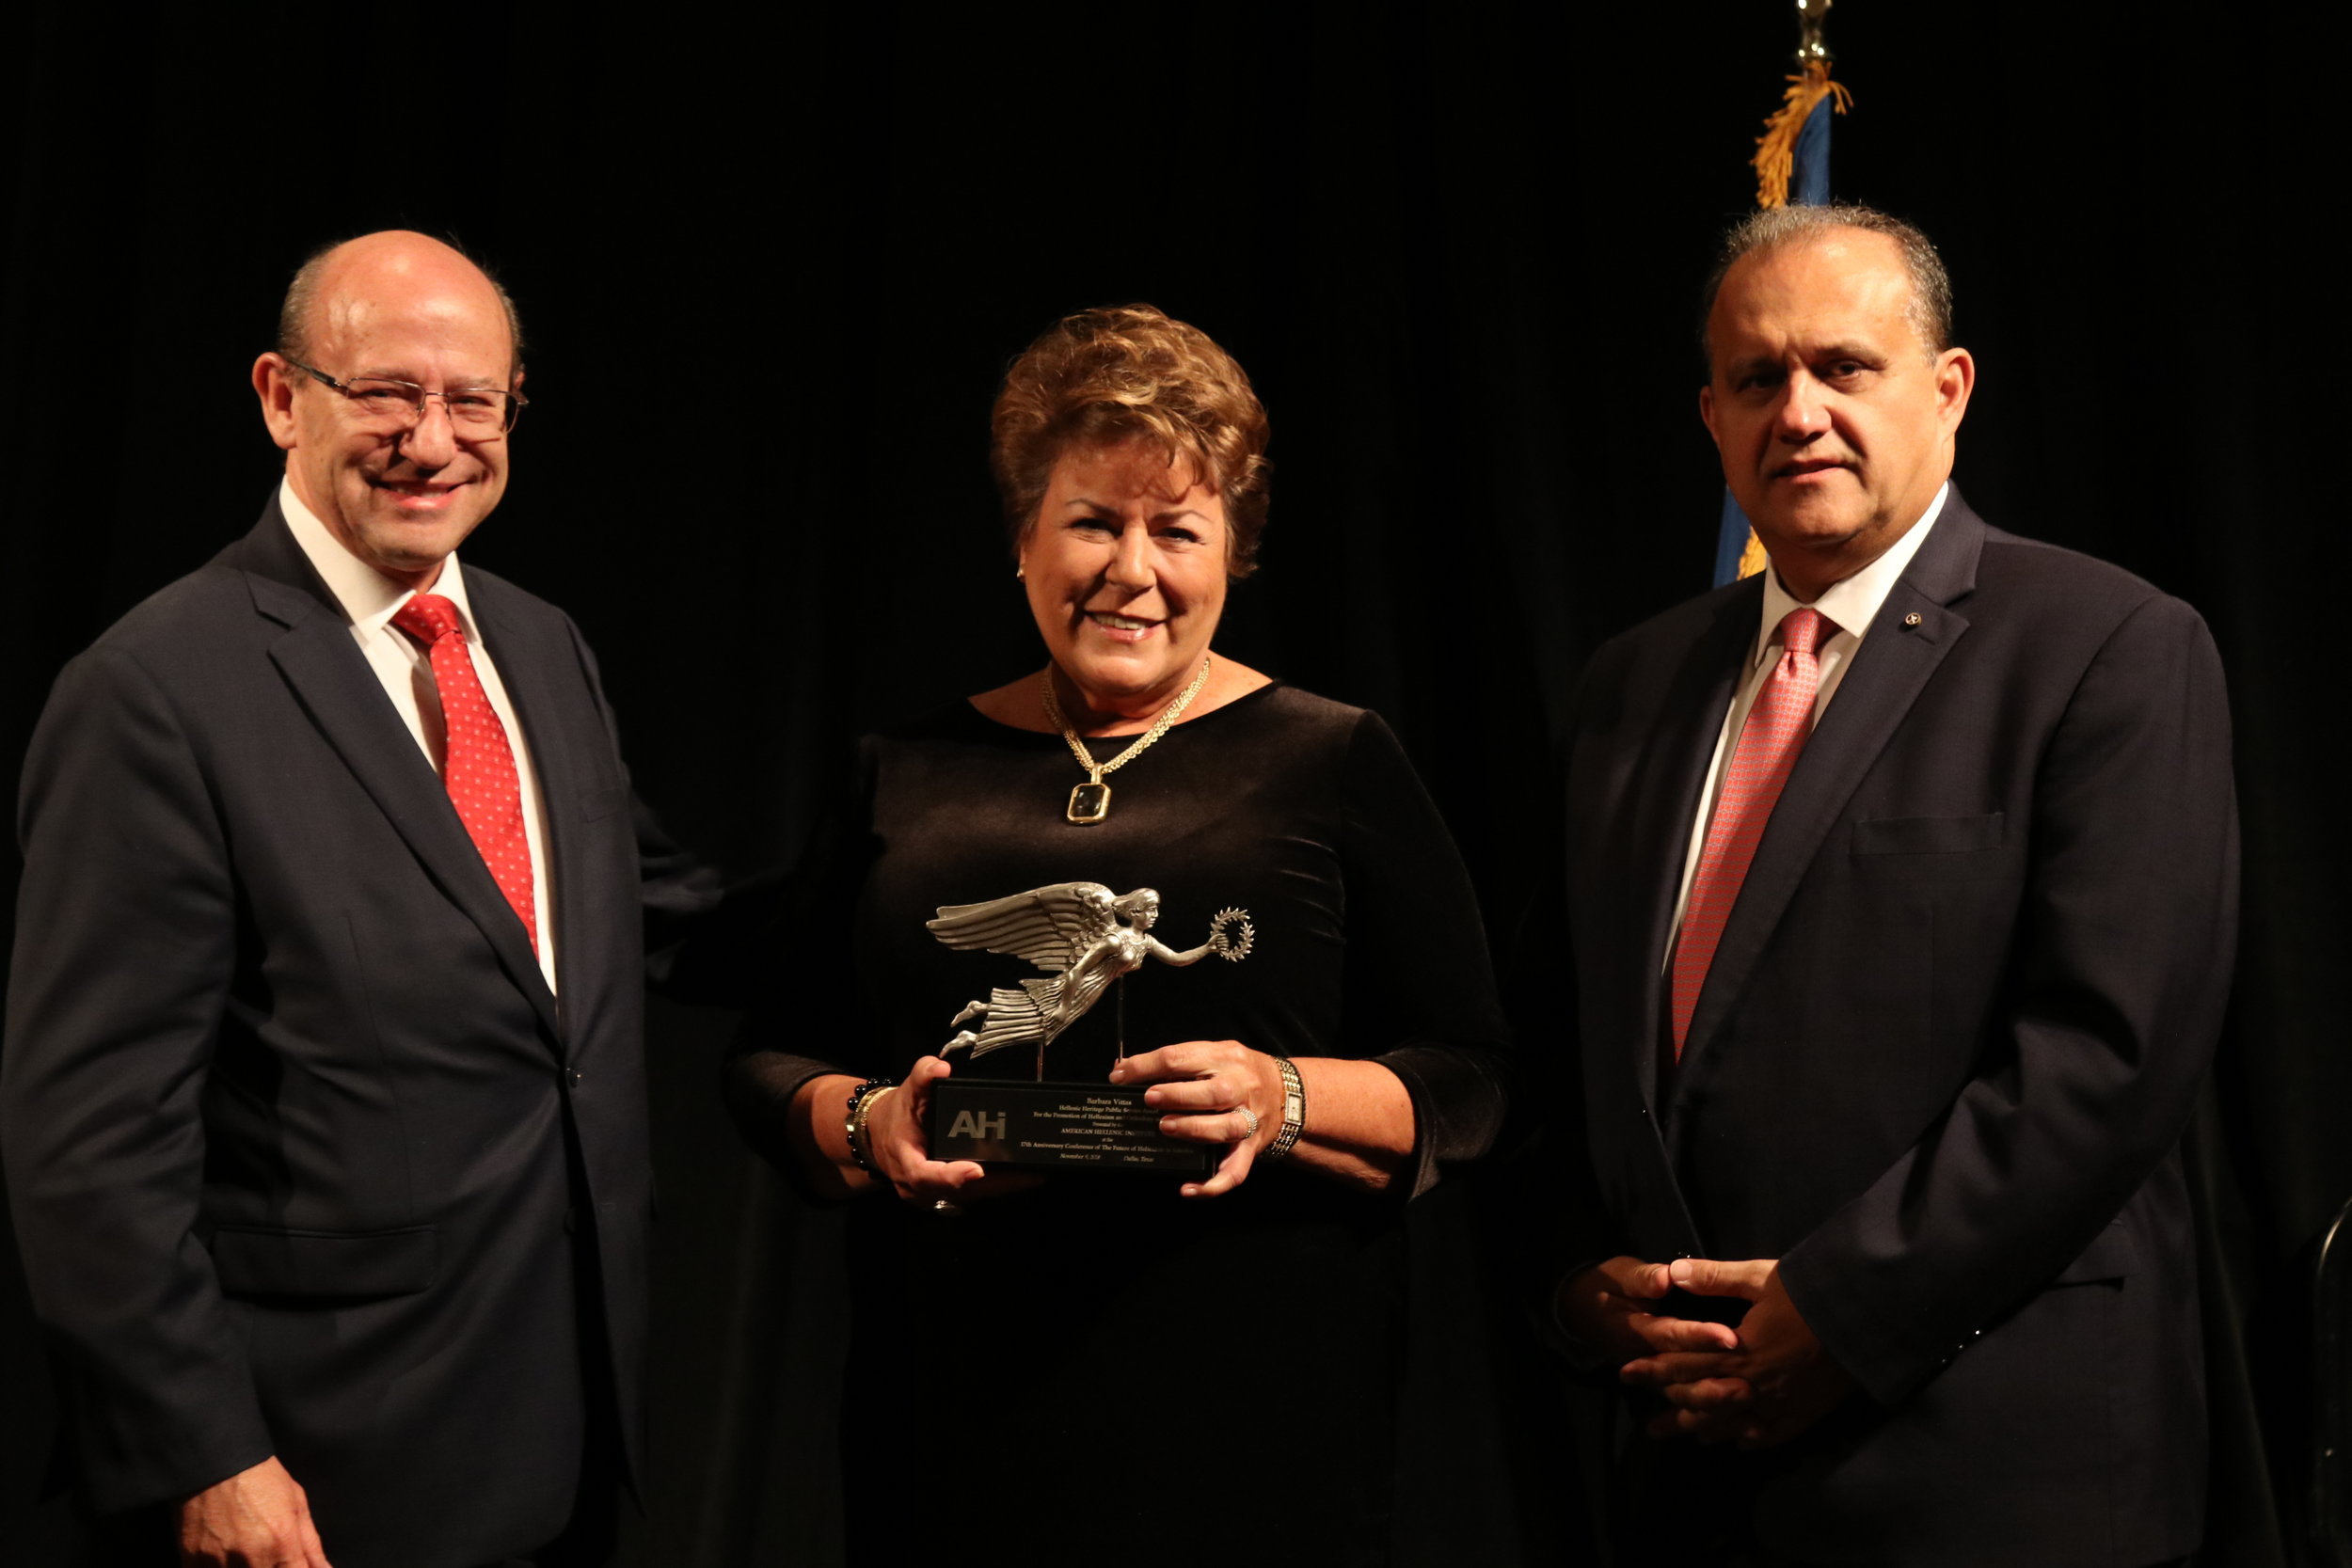 Barbara Vittas receives the AHI Hellenic Heritage Award for the Promotion of Hellenism and Orthodoxy in America.